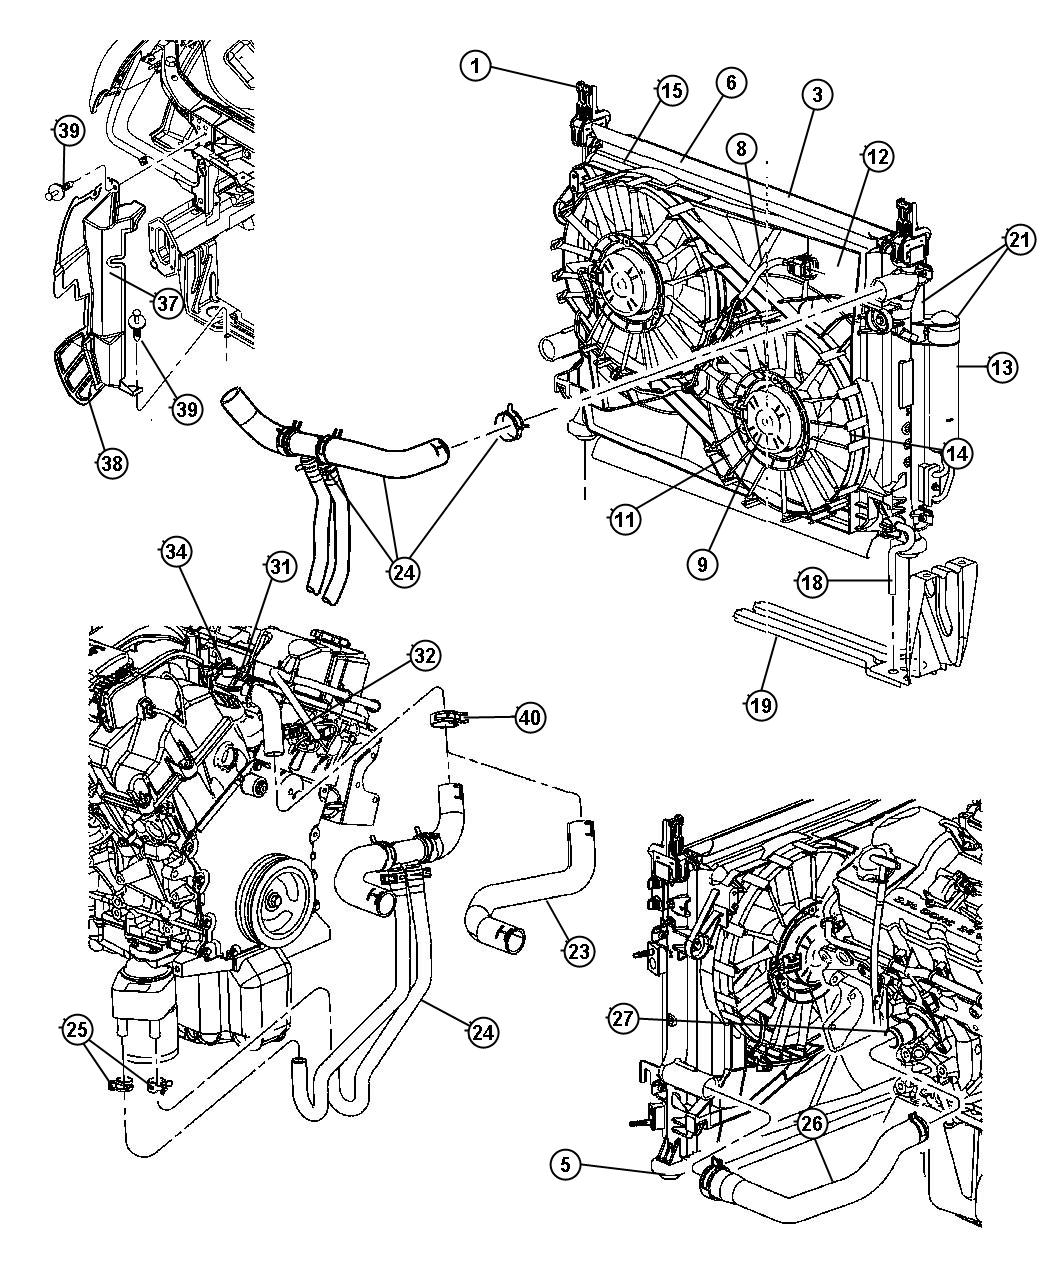 Radiator And Related Parts 2 7l Engine